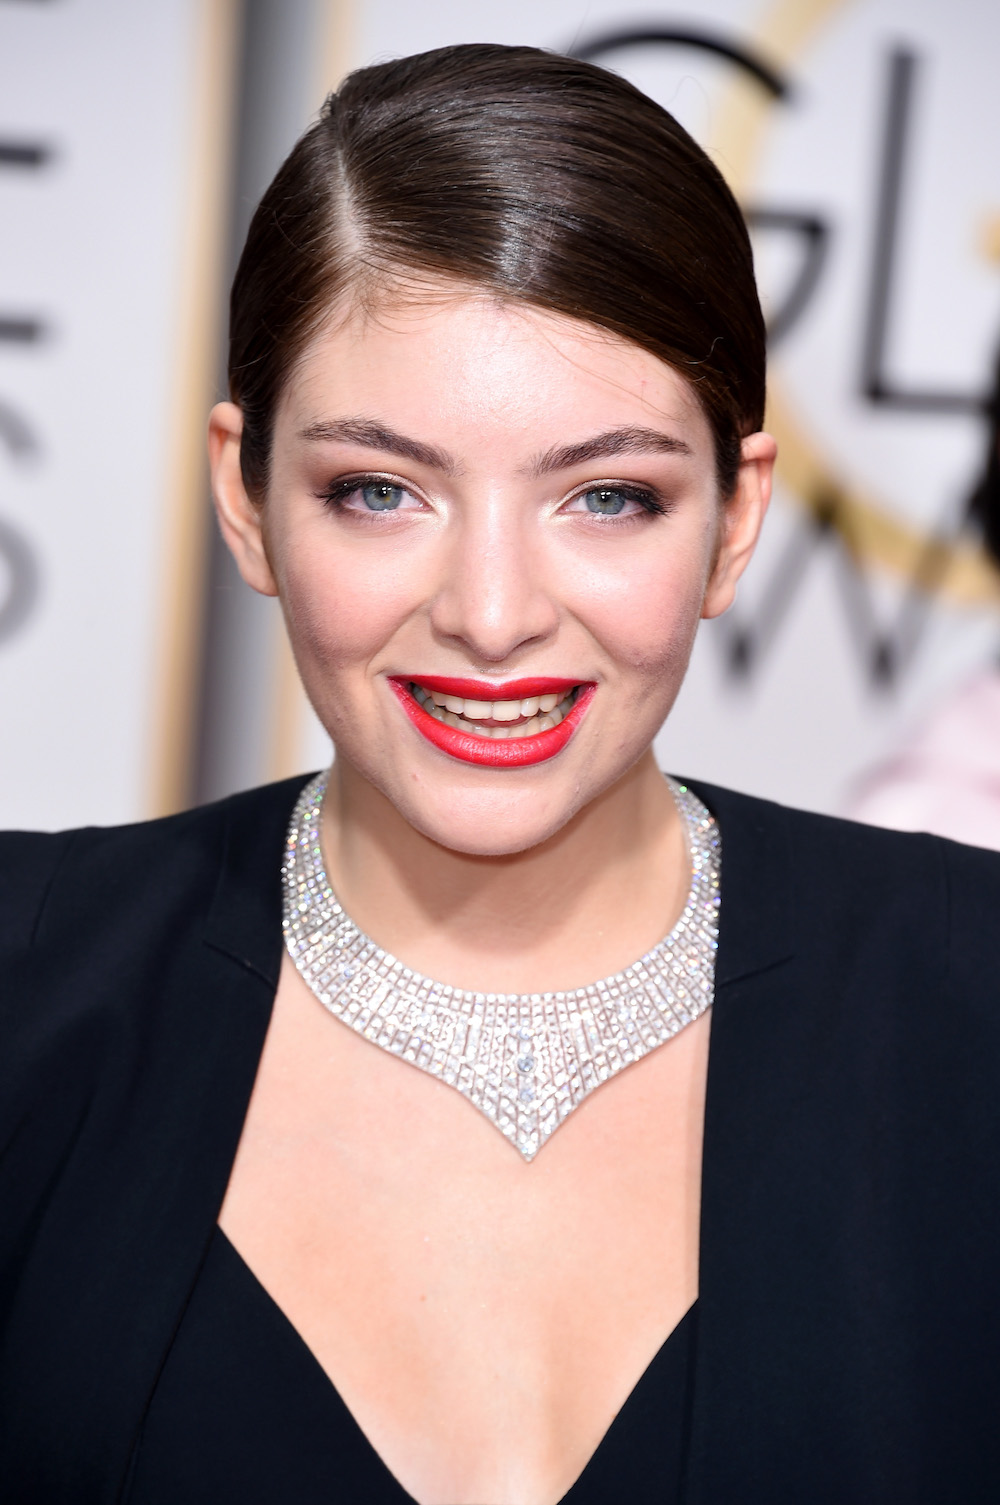 BEVERLY HILLS, CA - JANUARY 11:  Singer Lorde attends the 72nd Annual Golden Globe Awards at The Beverly Hilton Hotel on January 11, 2015 in Beverly Hills, California.  (Photo by Steve Granitz/WireImage)